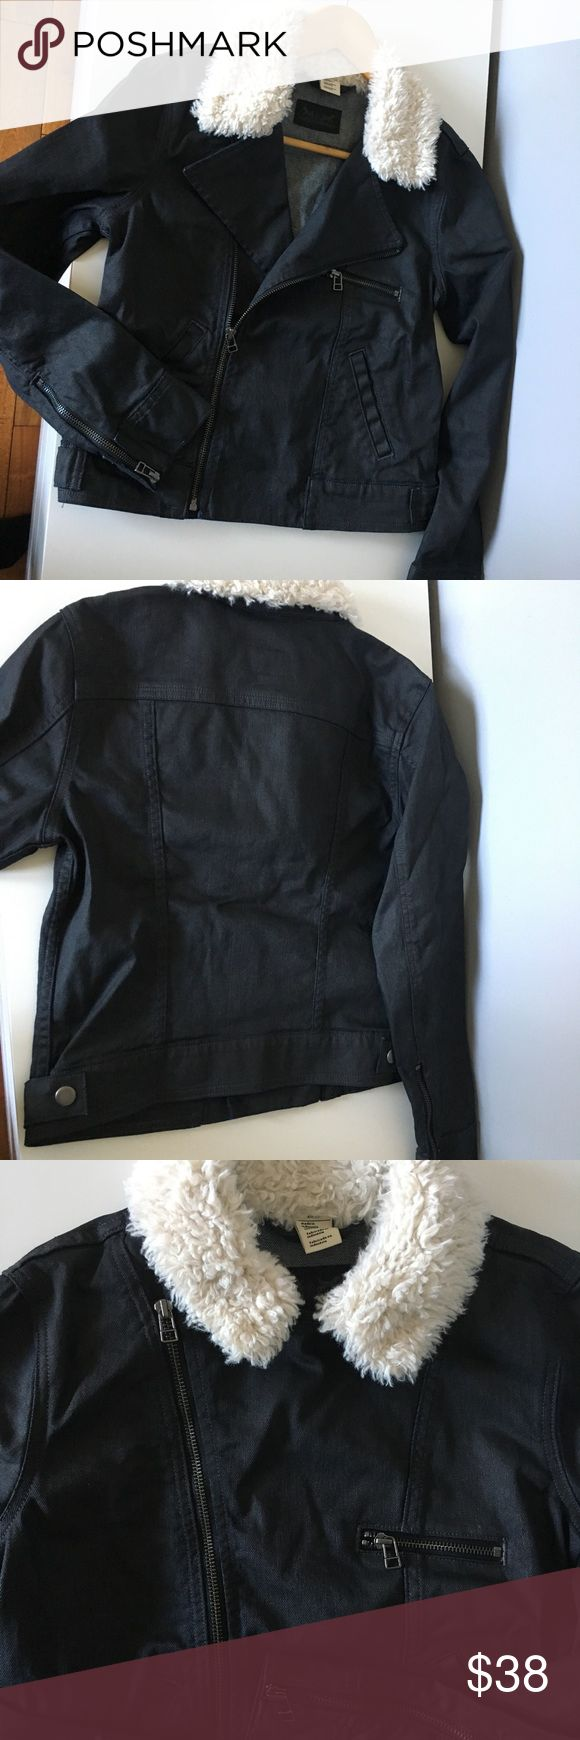 """Livi's jeans jacket with fur collar Excellent condition and looks very stylish. Size S. Length 20"""" Signature by Levi Strauss Jackets & Coats"""